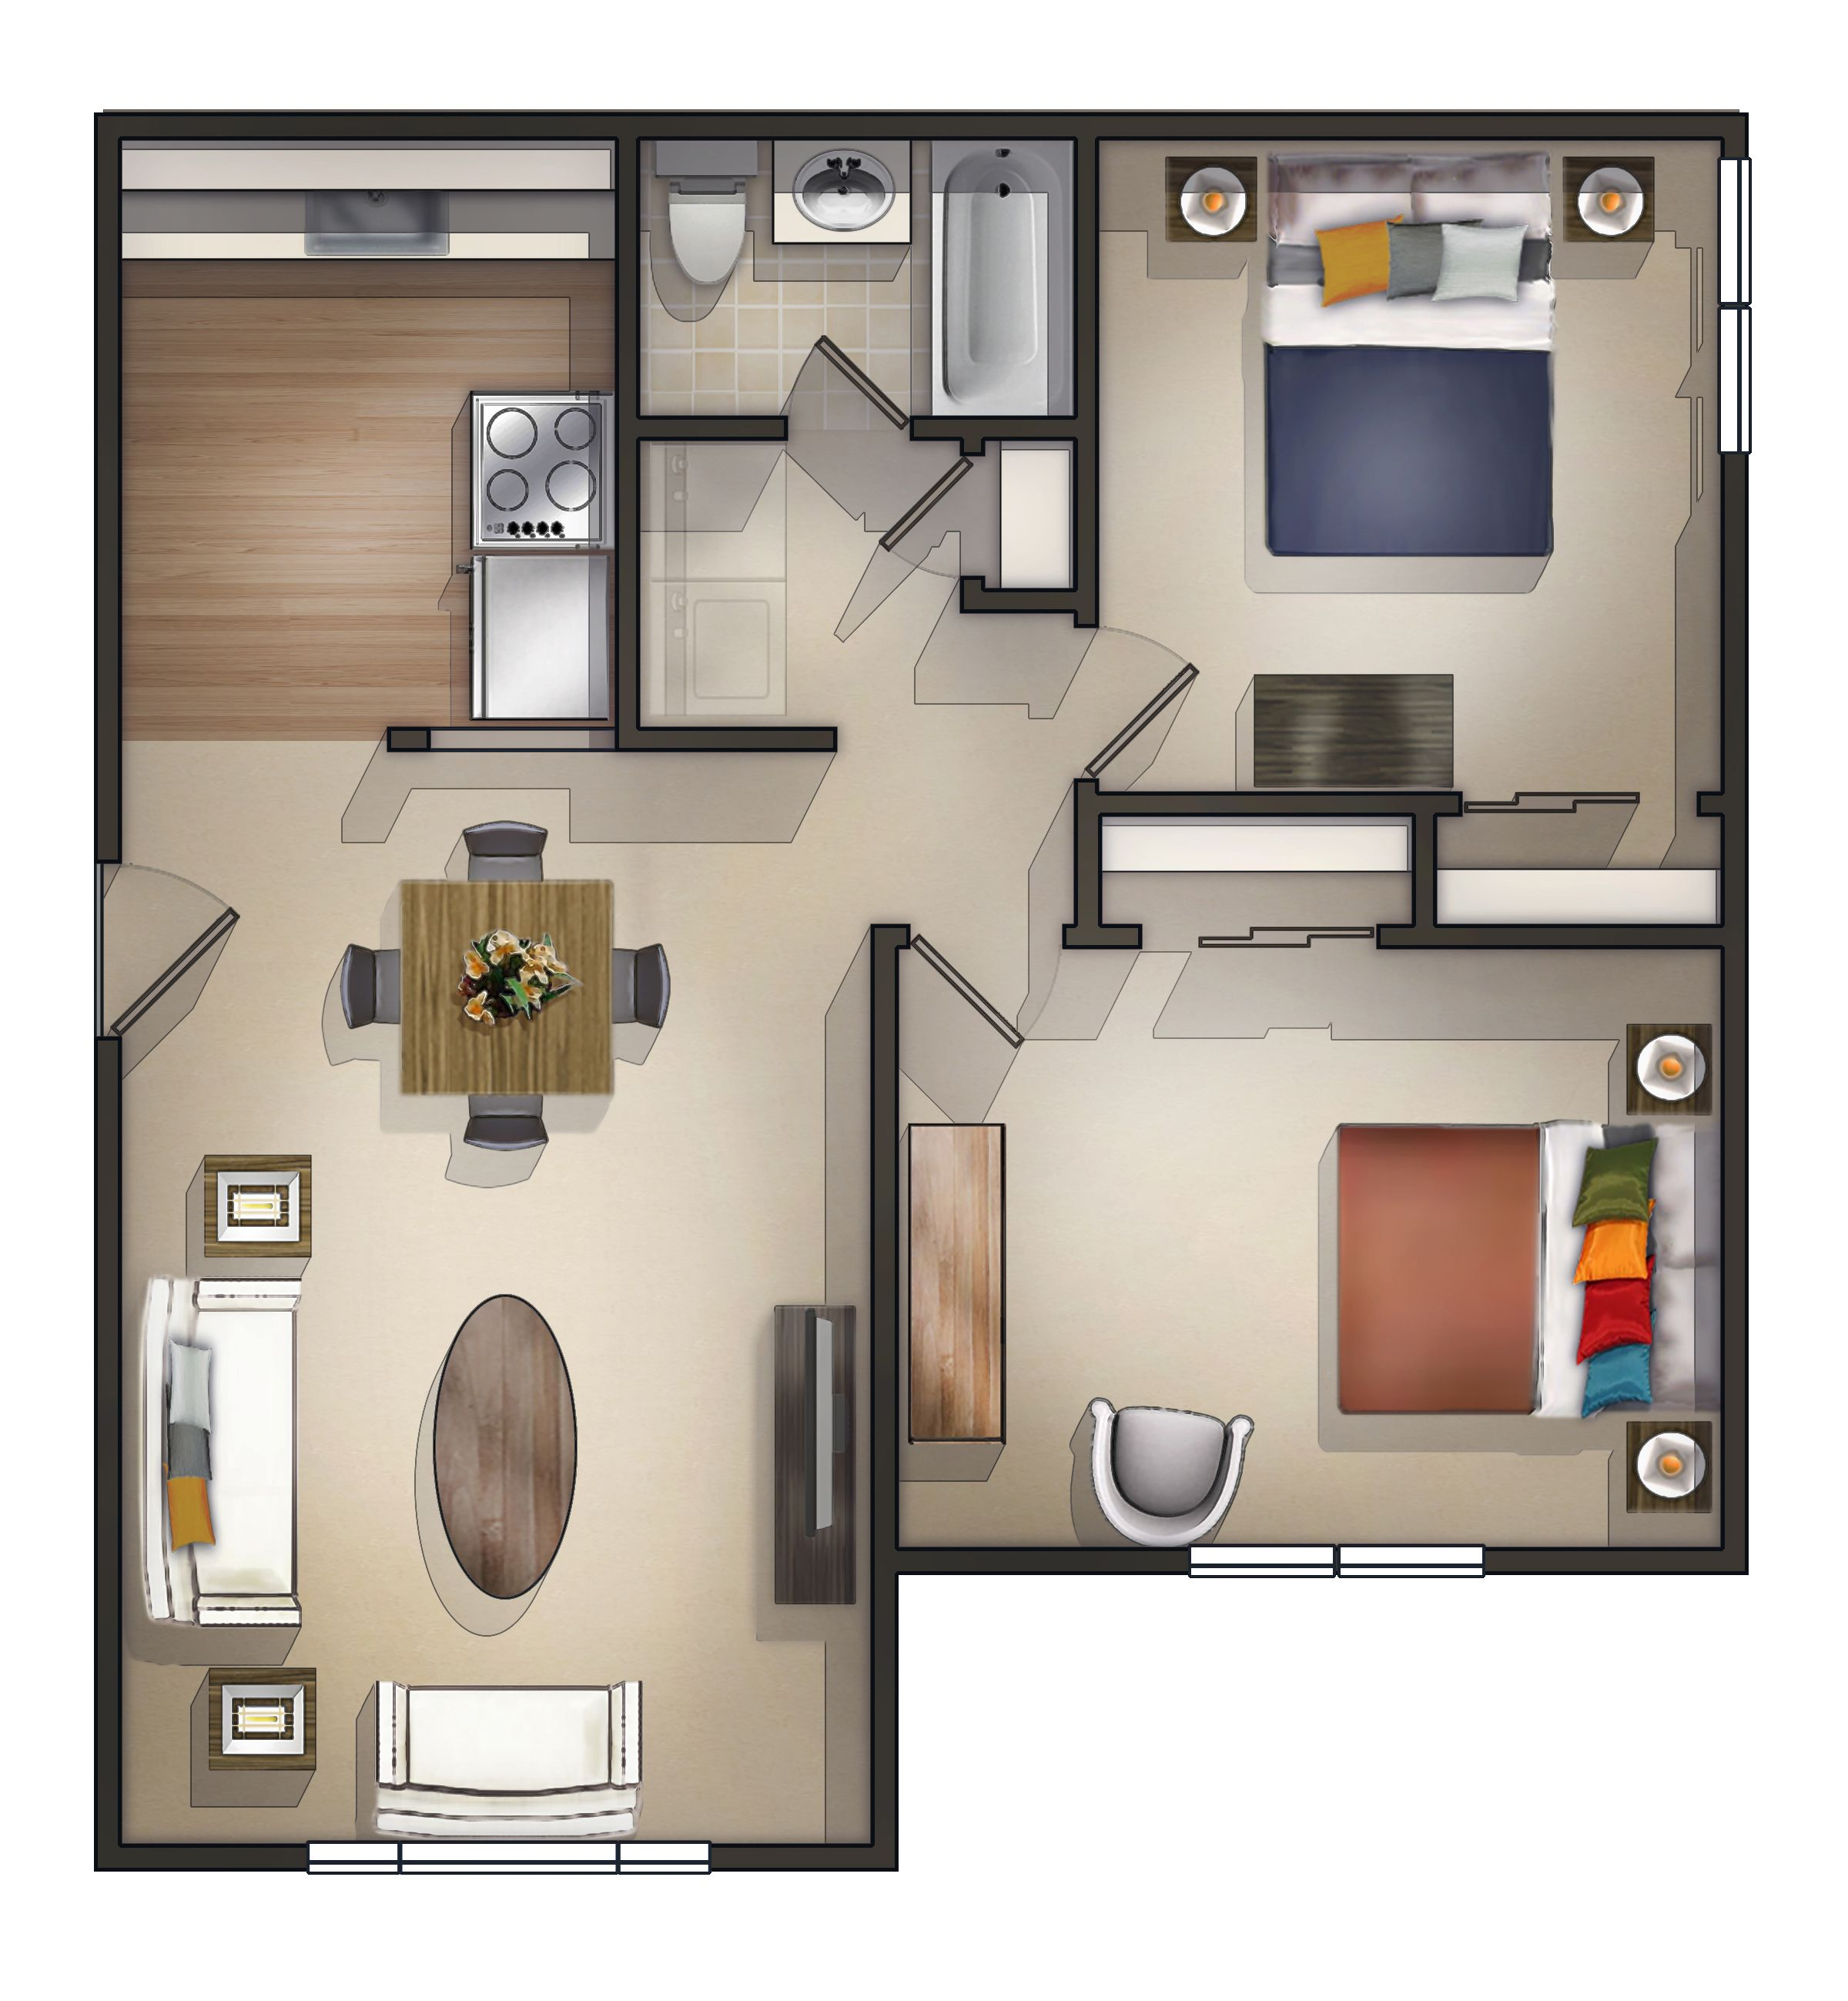 Cheap 2 Bedroom Apartments Near Me Apartmentsdesign Bedroomdesign Falsecailingdesign Studio Apartment Floor Plans Apartment Layout Studio Apartment Layout